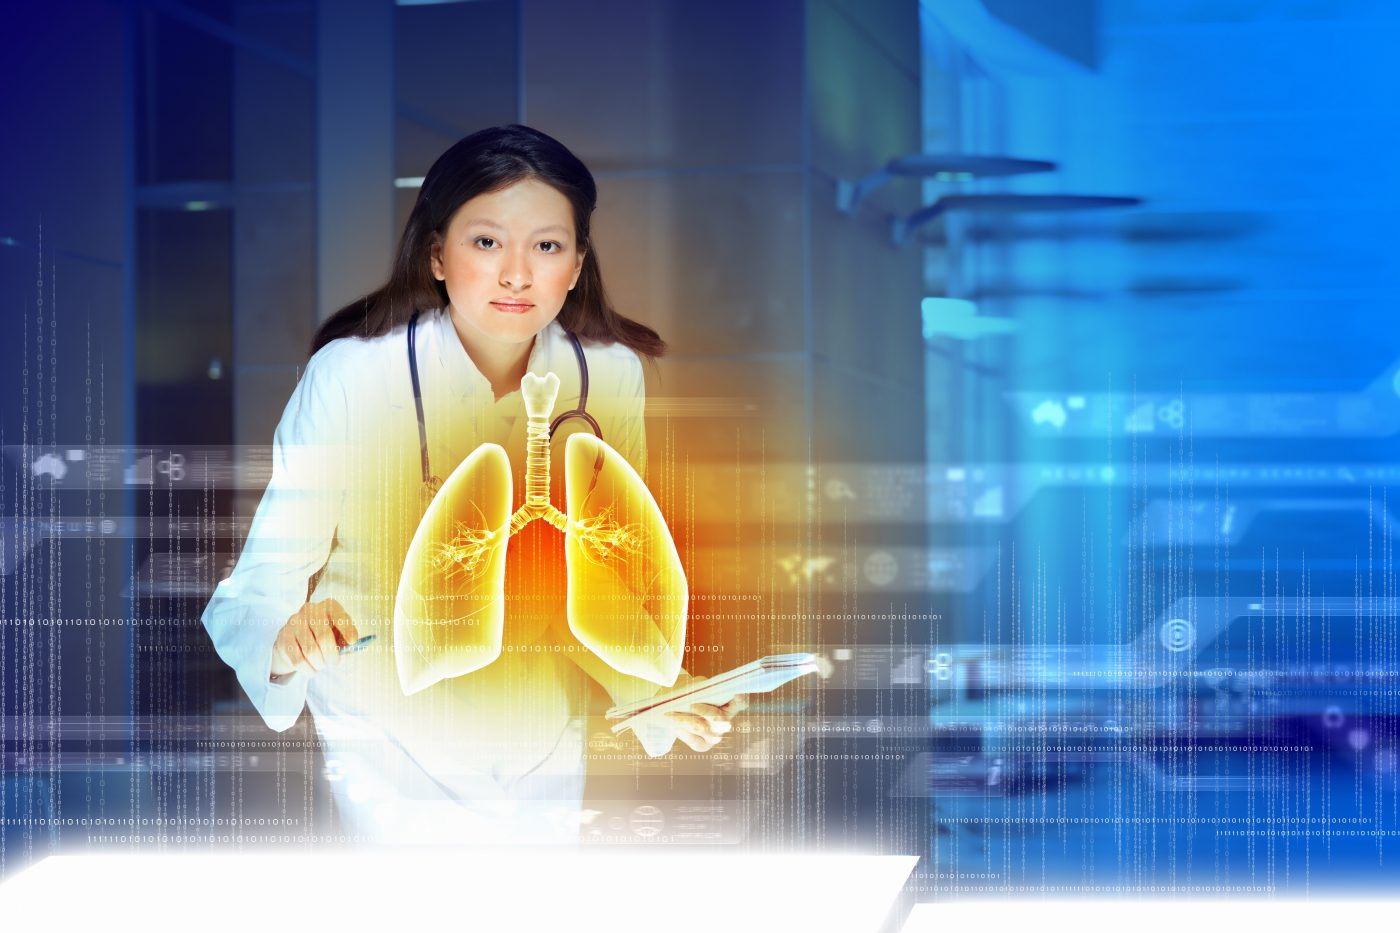 Diagnostic Imaging Tool to Assess Idiopathic Pulmonary Fibrosis Disease Progression Developed